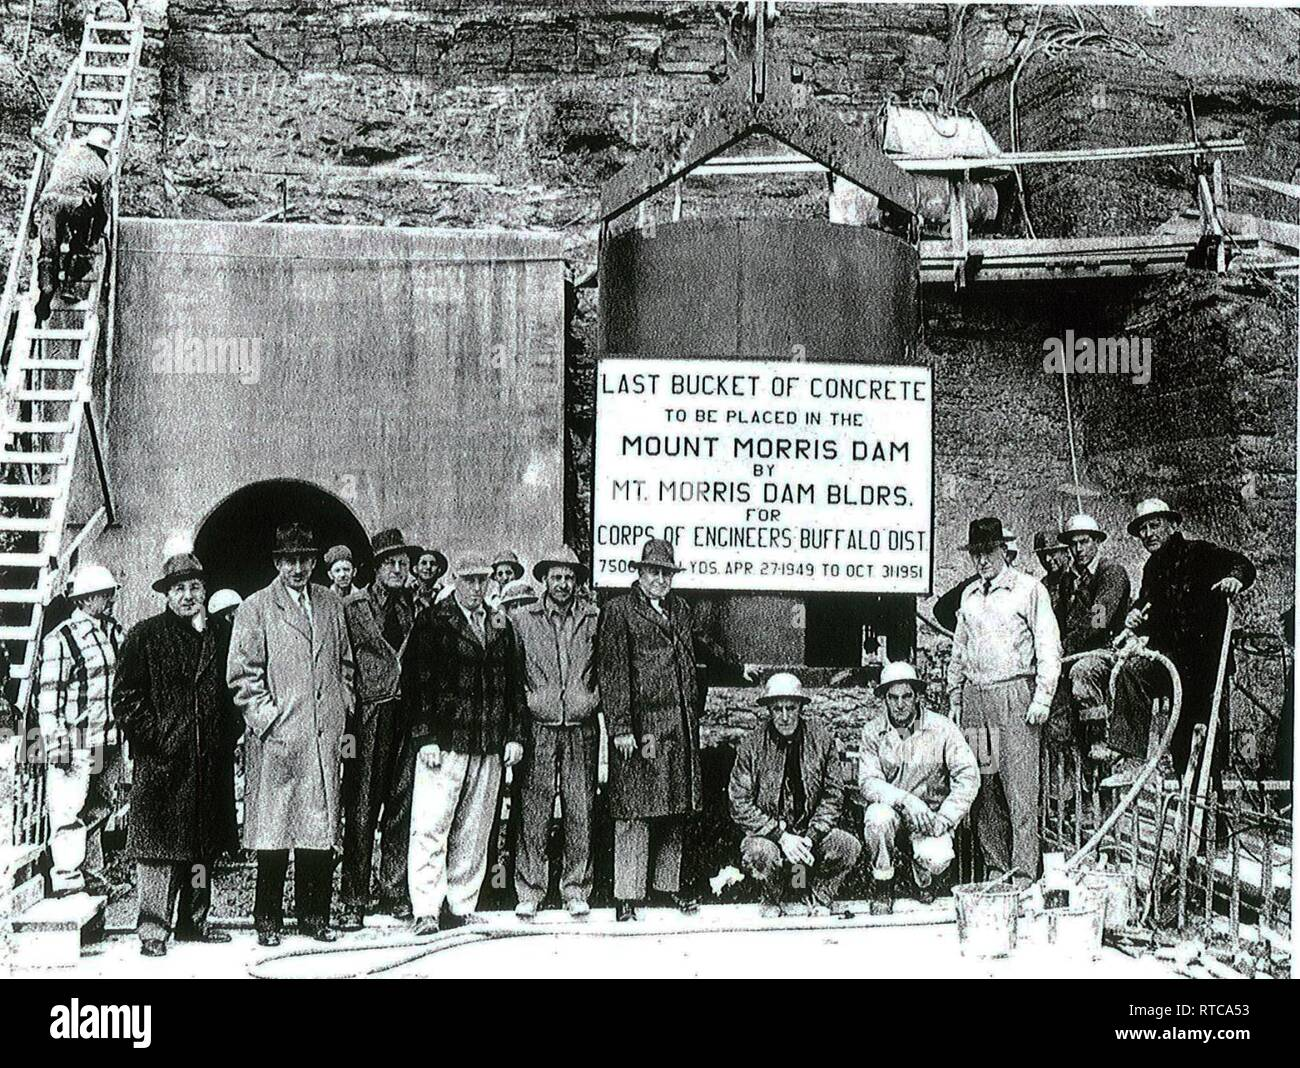 Mount Morris Dam High Resolution Stock Photography And Images Alamy